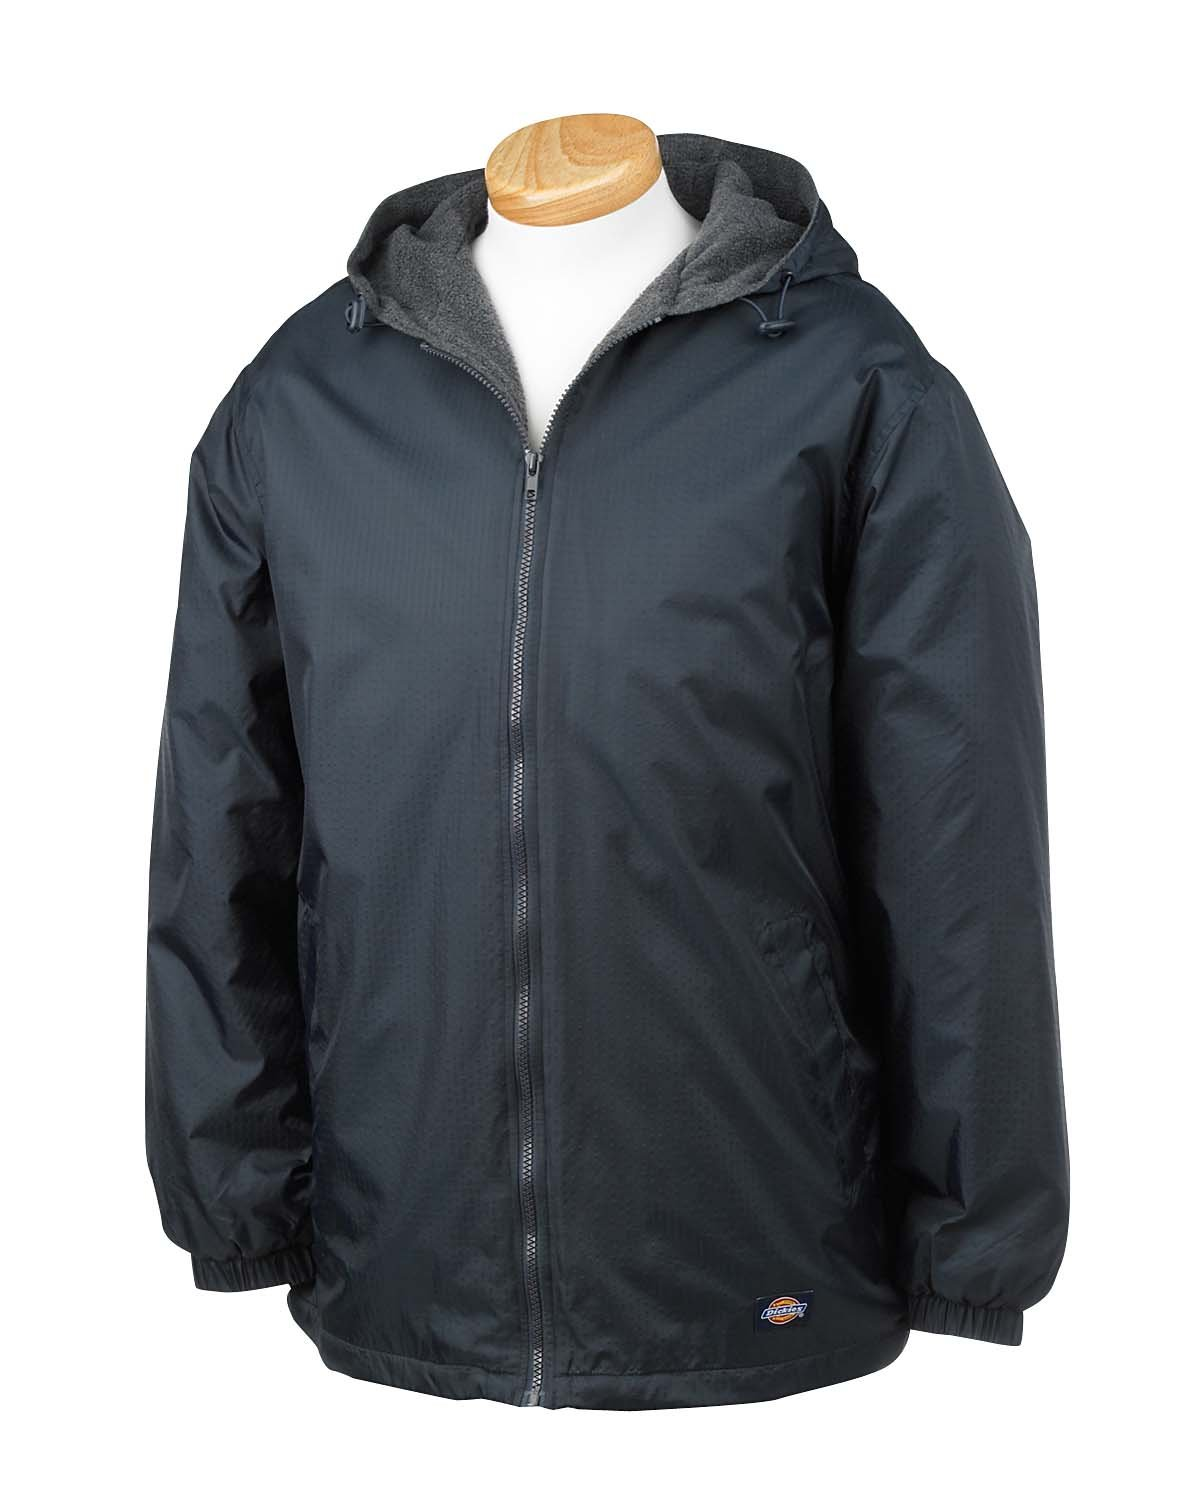 Dickies Men's Fleece-Lined Hooded Jacket Dickies Men' s Sportswear 33237